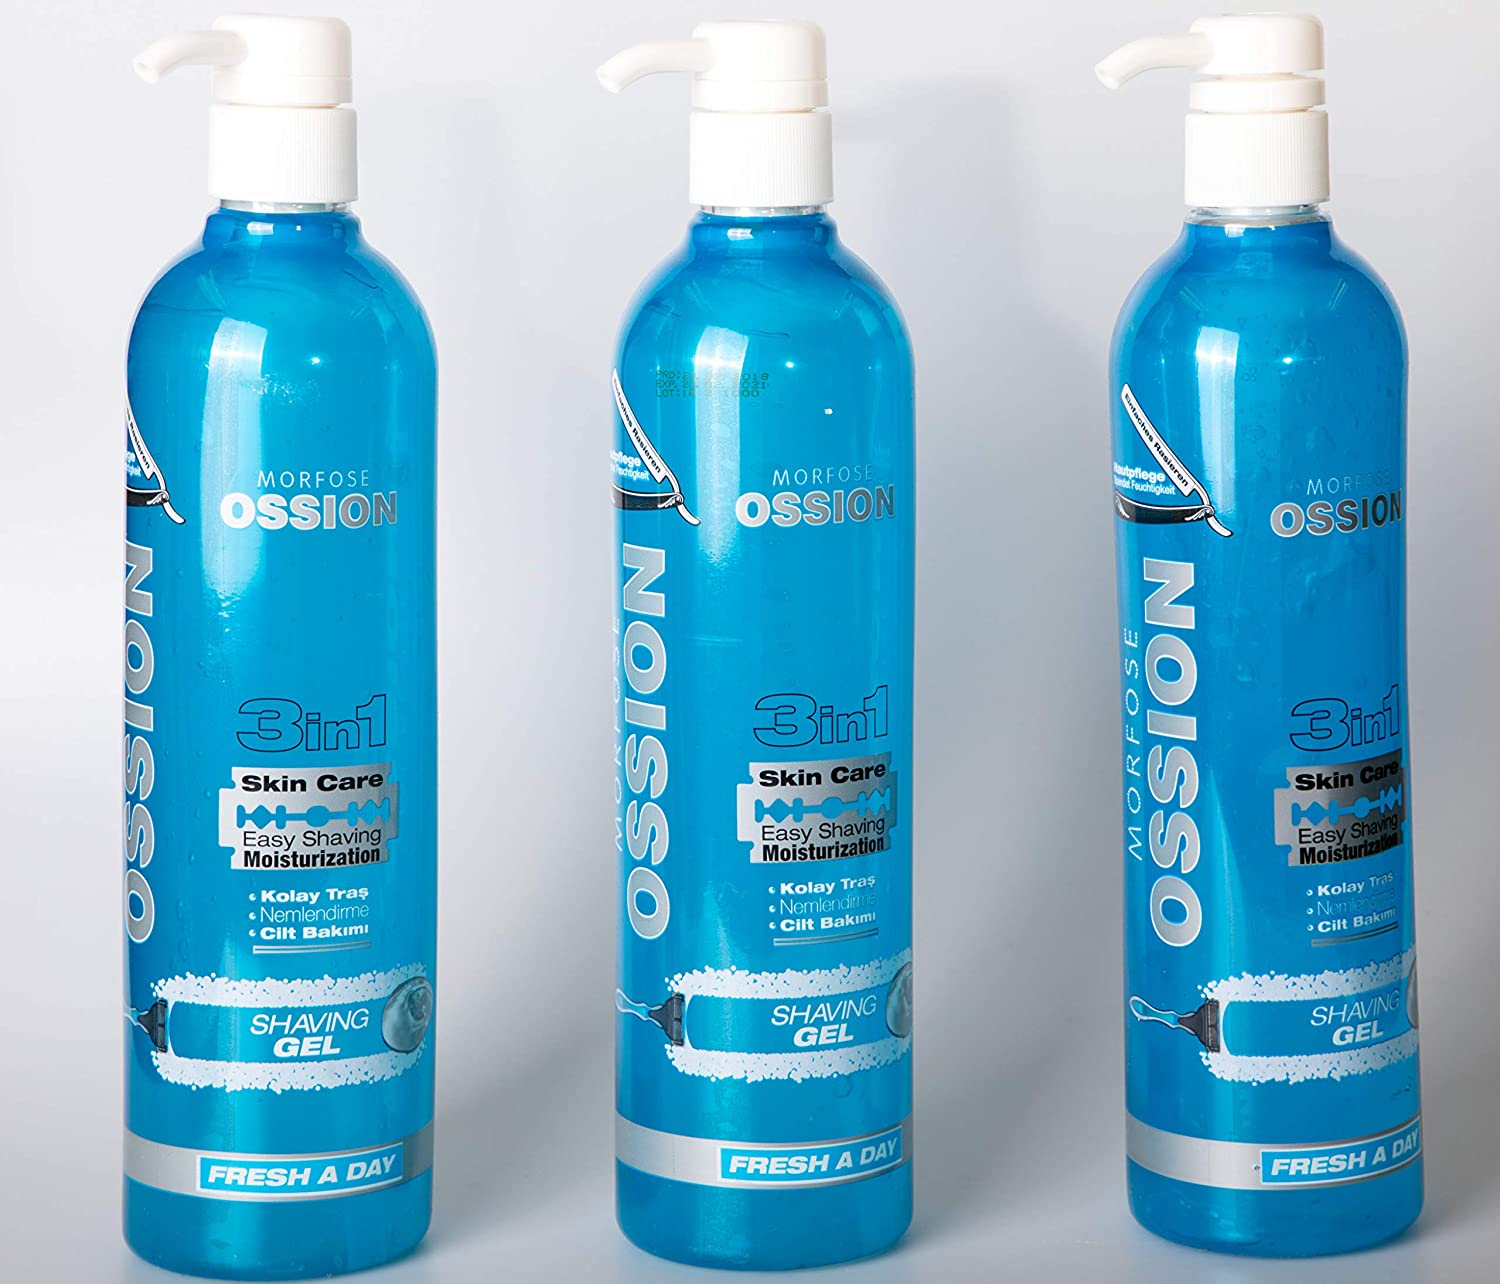 3X700ML – Ossion Shaving Gel 3-in-1 Saykos GmbH